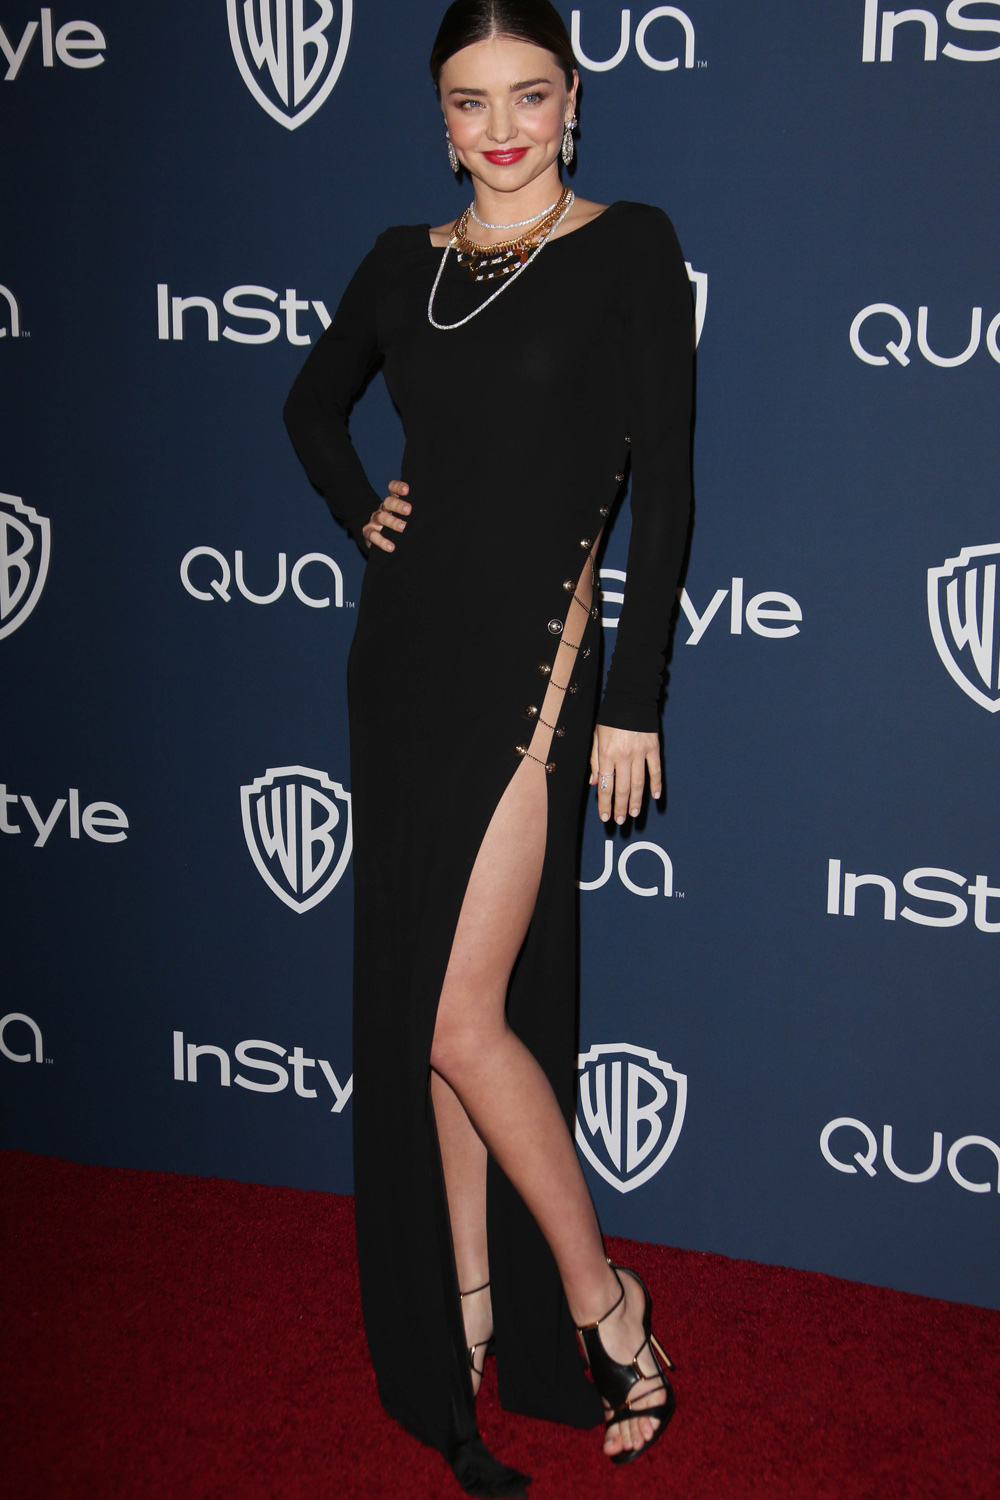 Miranda Kerr Reminds Us Why The 90s Were Awesome With Her Daring After-Party Dress